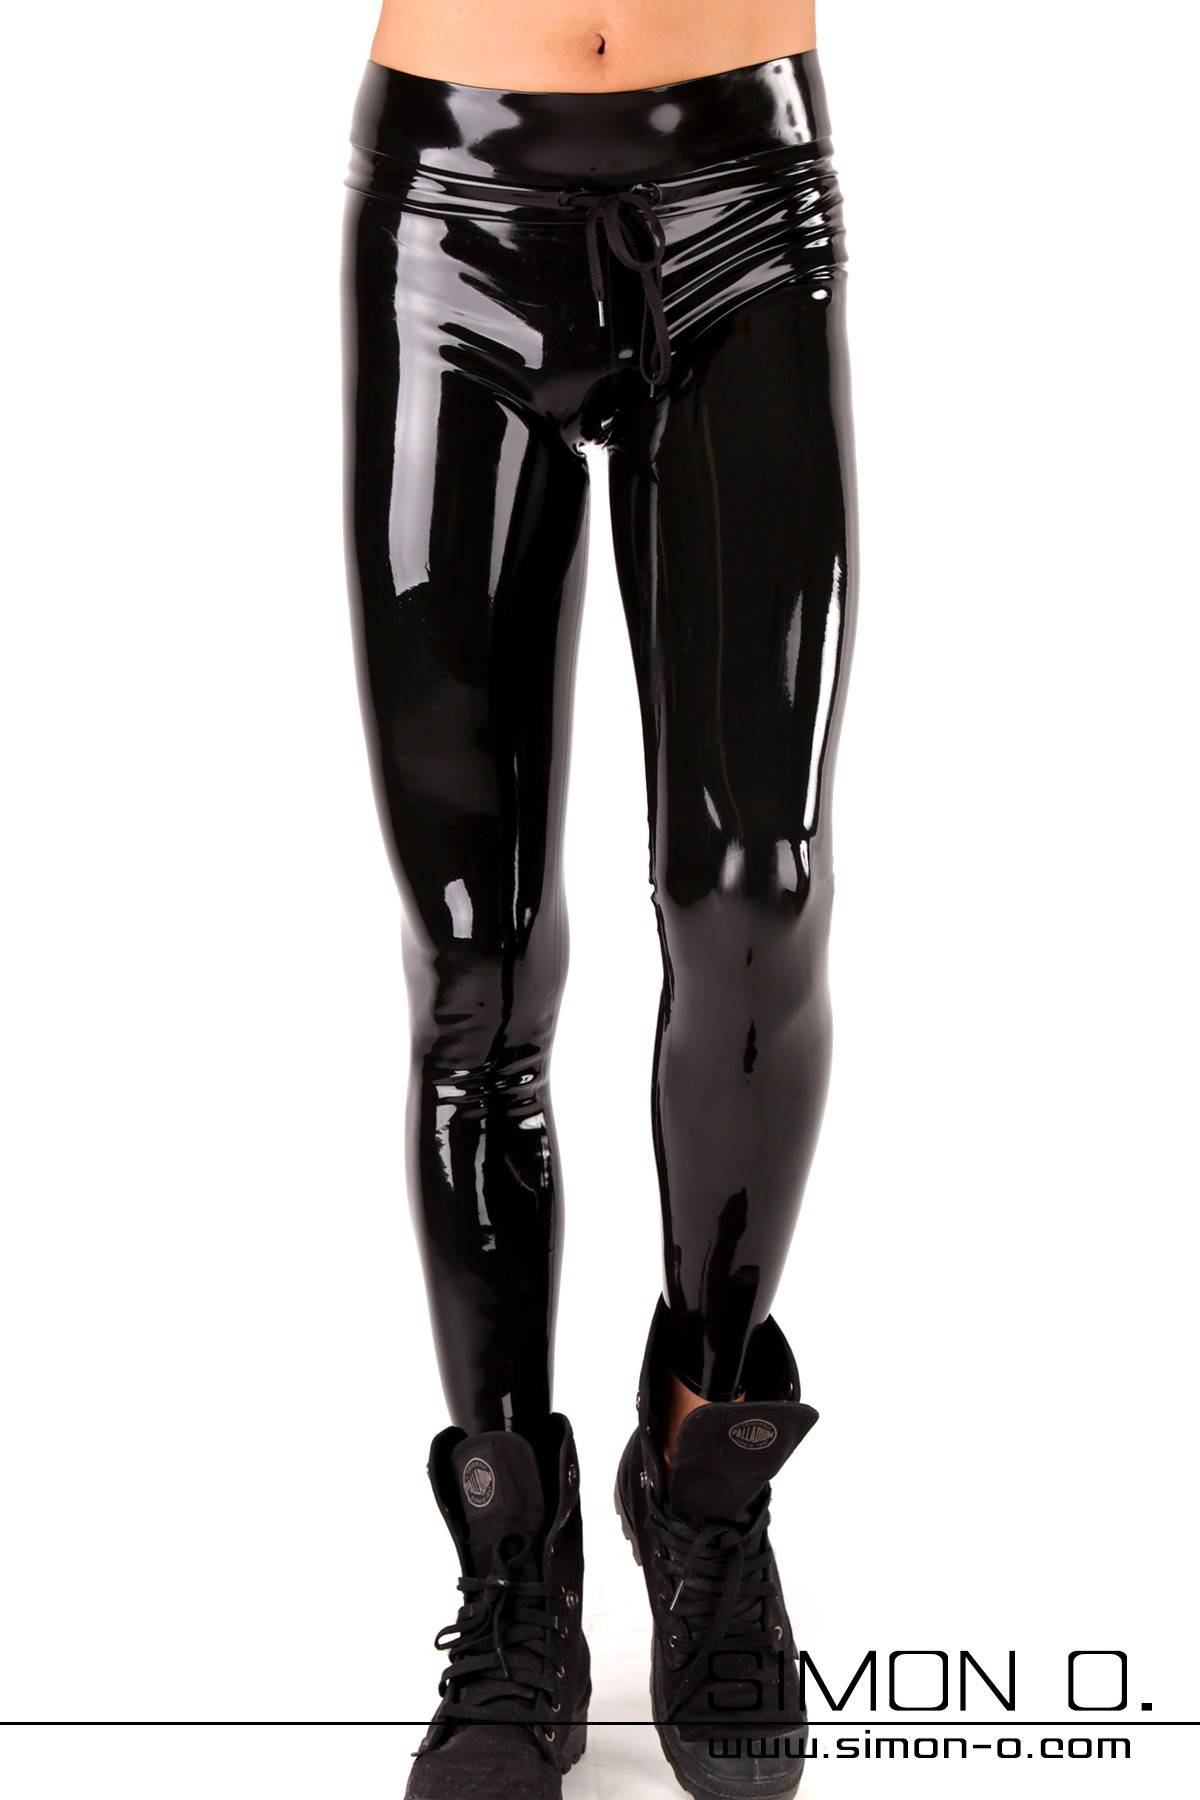 Black shiny training pants made of skintight shiny latex